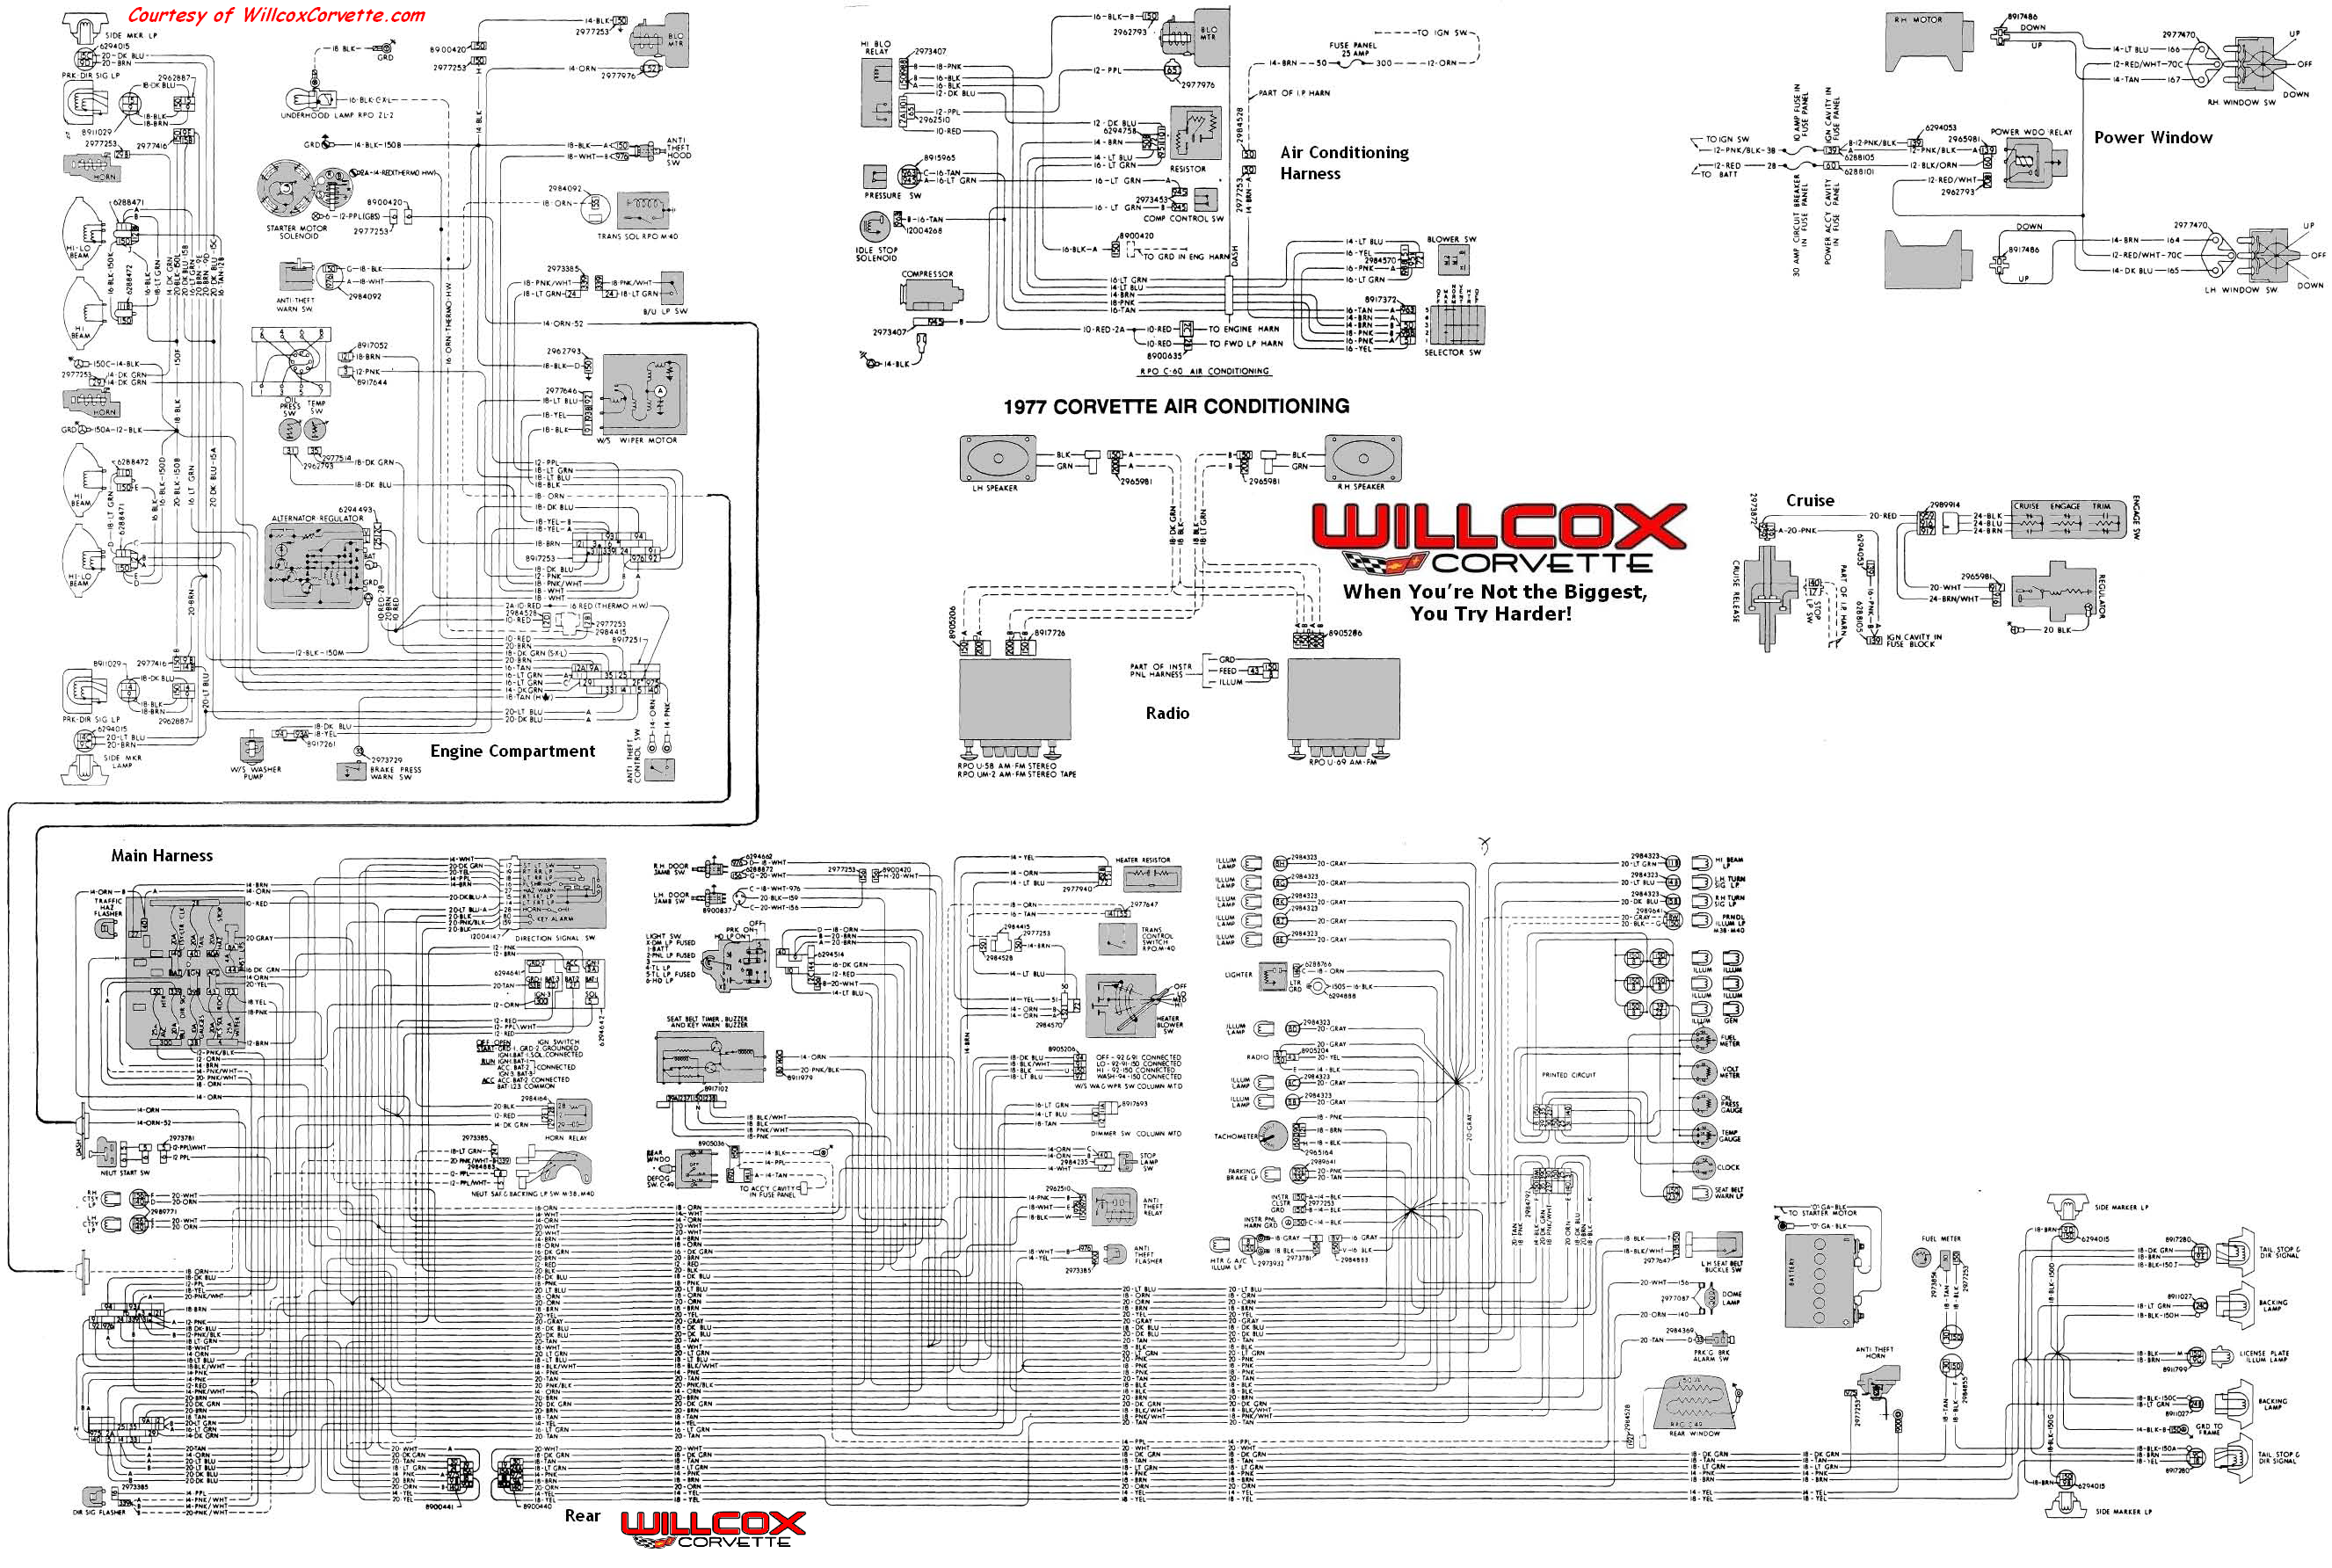 77 corvette wire schematic tracer c5 stereo wiring diagram? corvetteforum chevrolet corvette c3 corvette wiring diagram at crackthecode.co